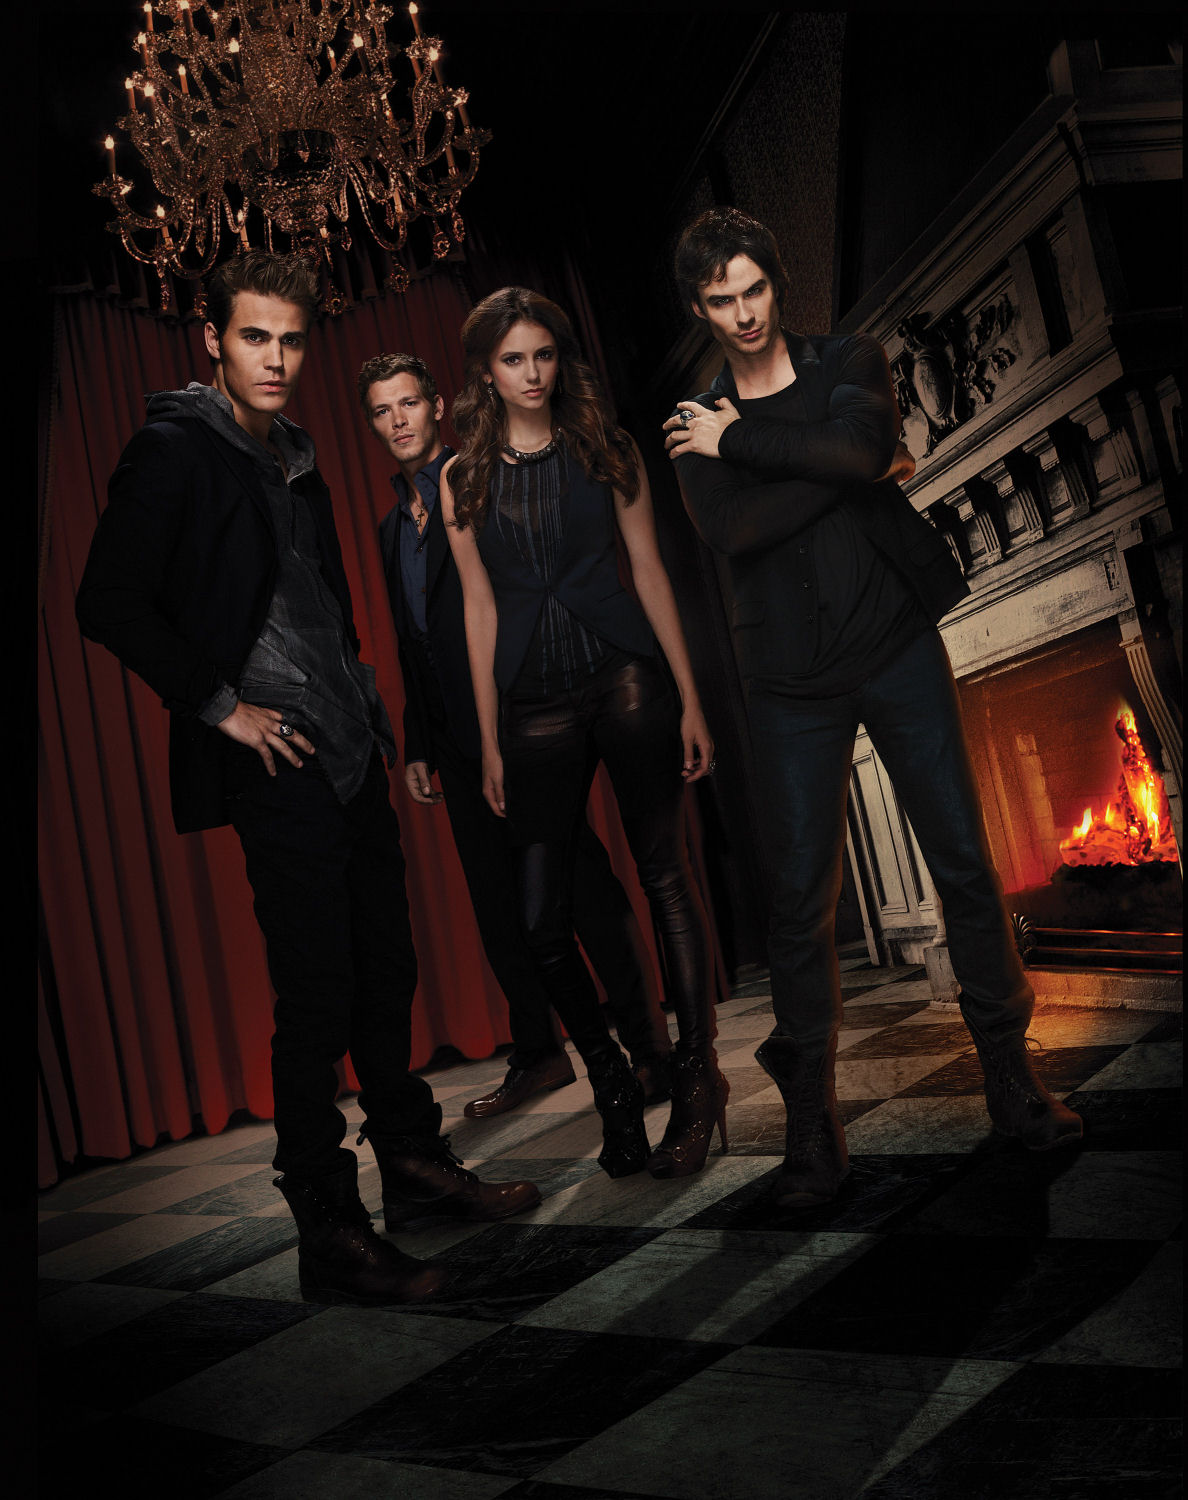 tvd poster s3 cheminée